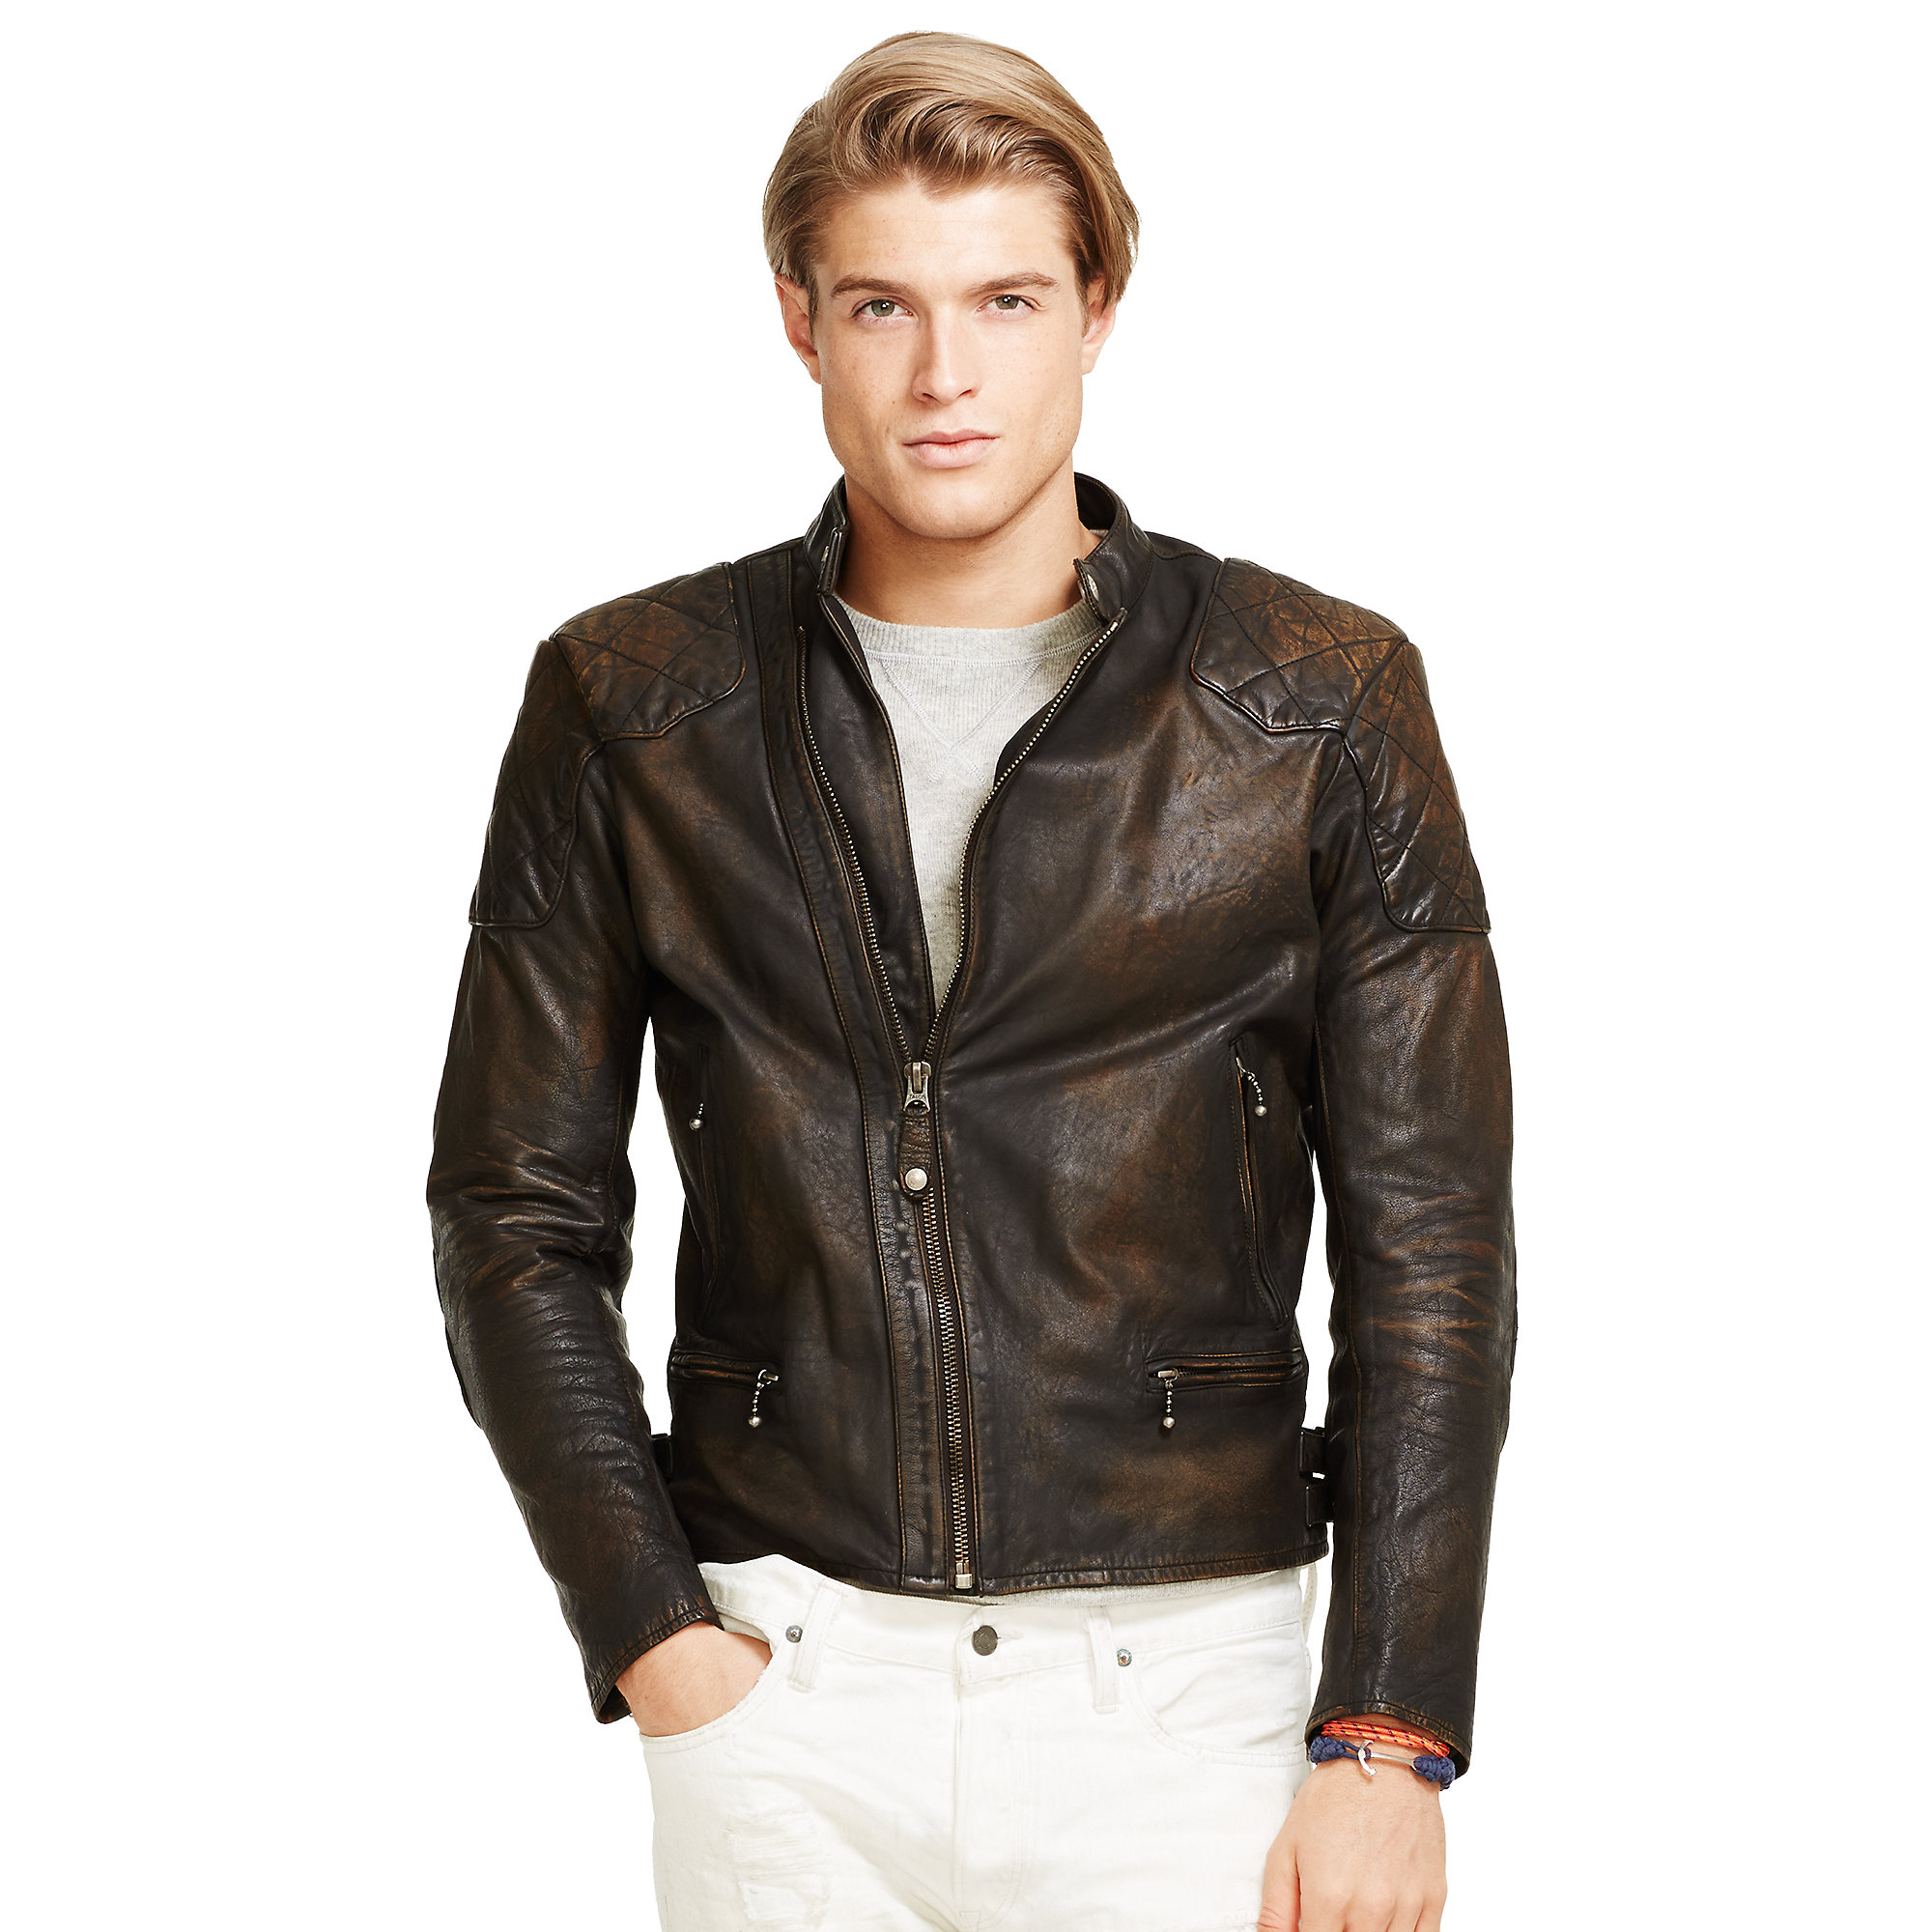 da5136043b9 Lyst - Polo Ralph Lauren Leather Café Racer Jacket in Brown for Men